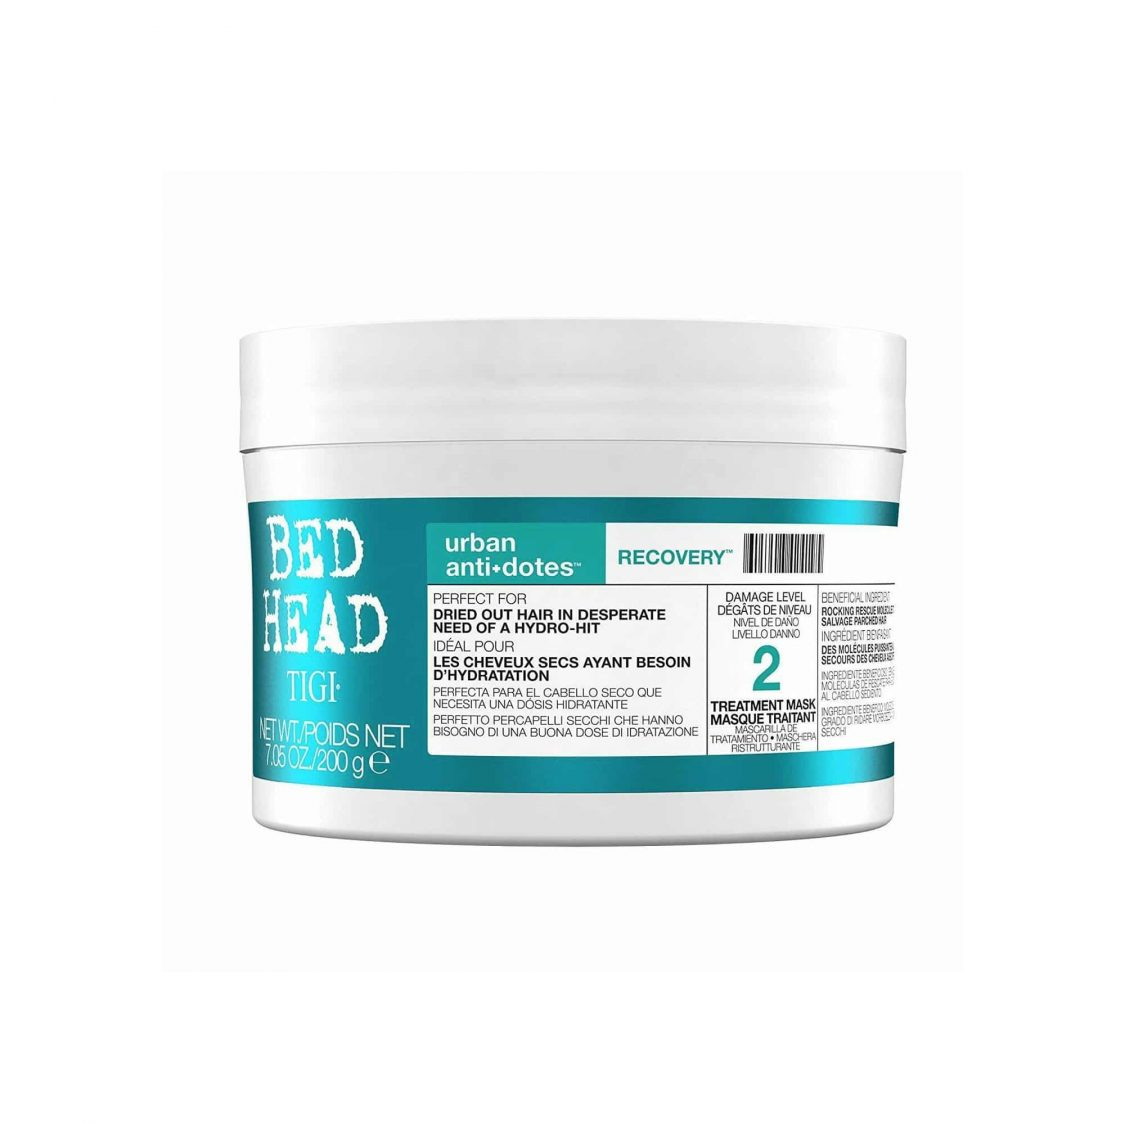 TIGI - Bed Head - Recovery treatment mask 200ml